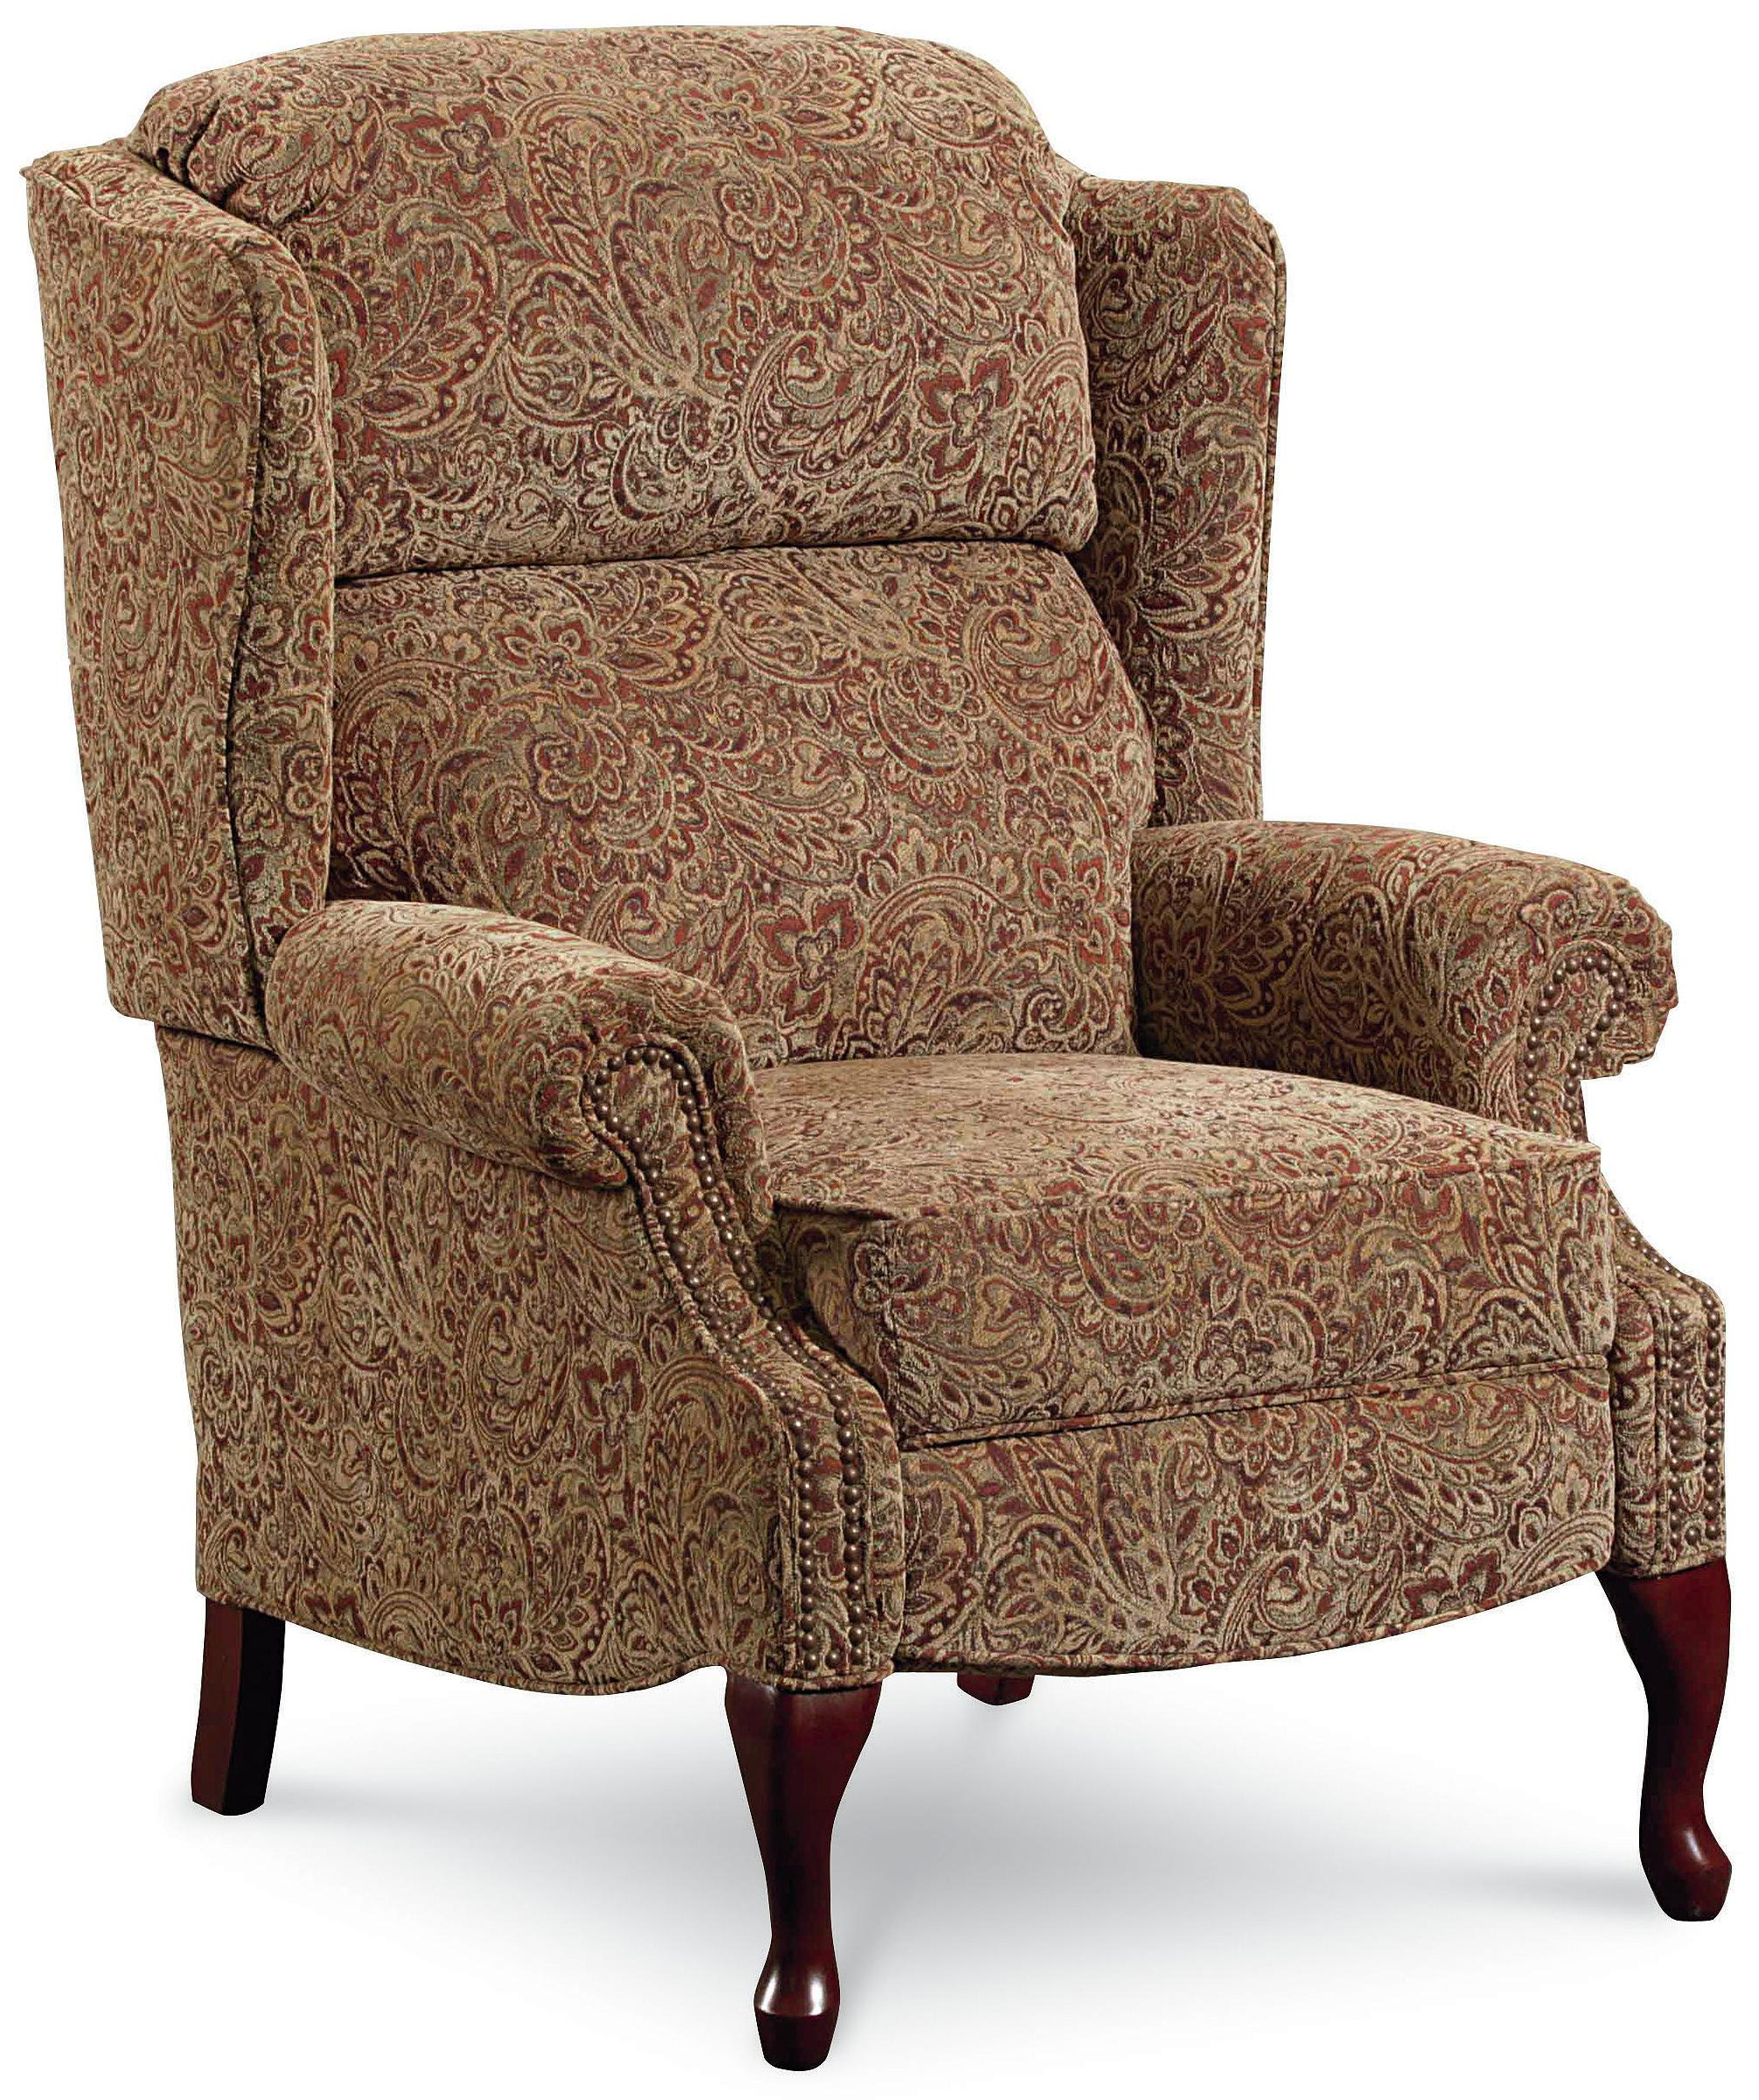 wing back chair recliner tinkerbell table and chairs lane hi leg recliners 2530 savannah high